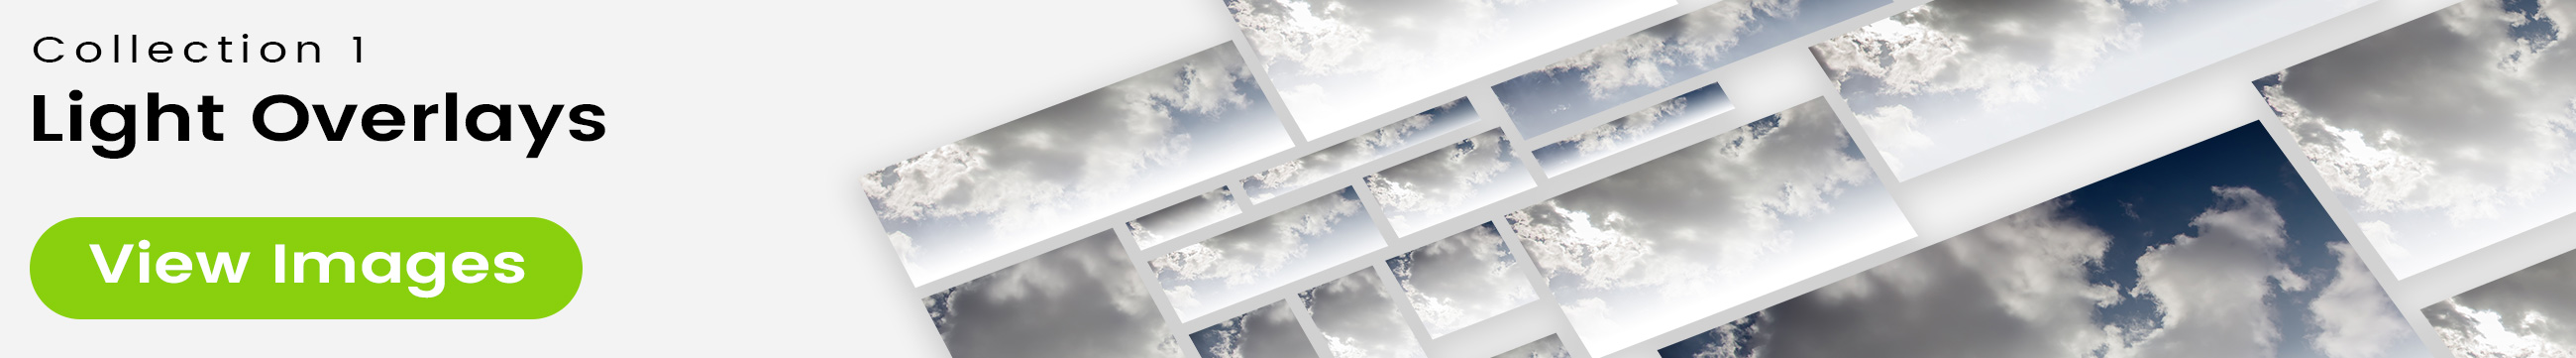 See 25 bonus images included with clouds stock image 9503. Collection 1 of 4 features a light overlay design.